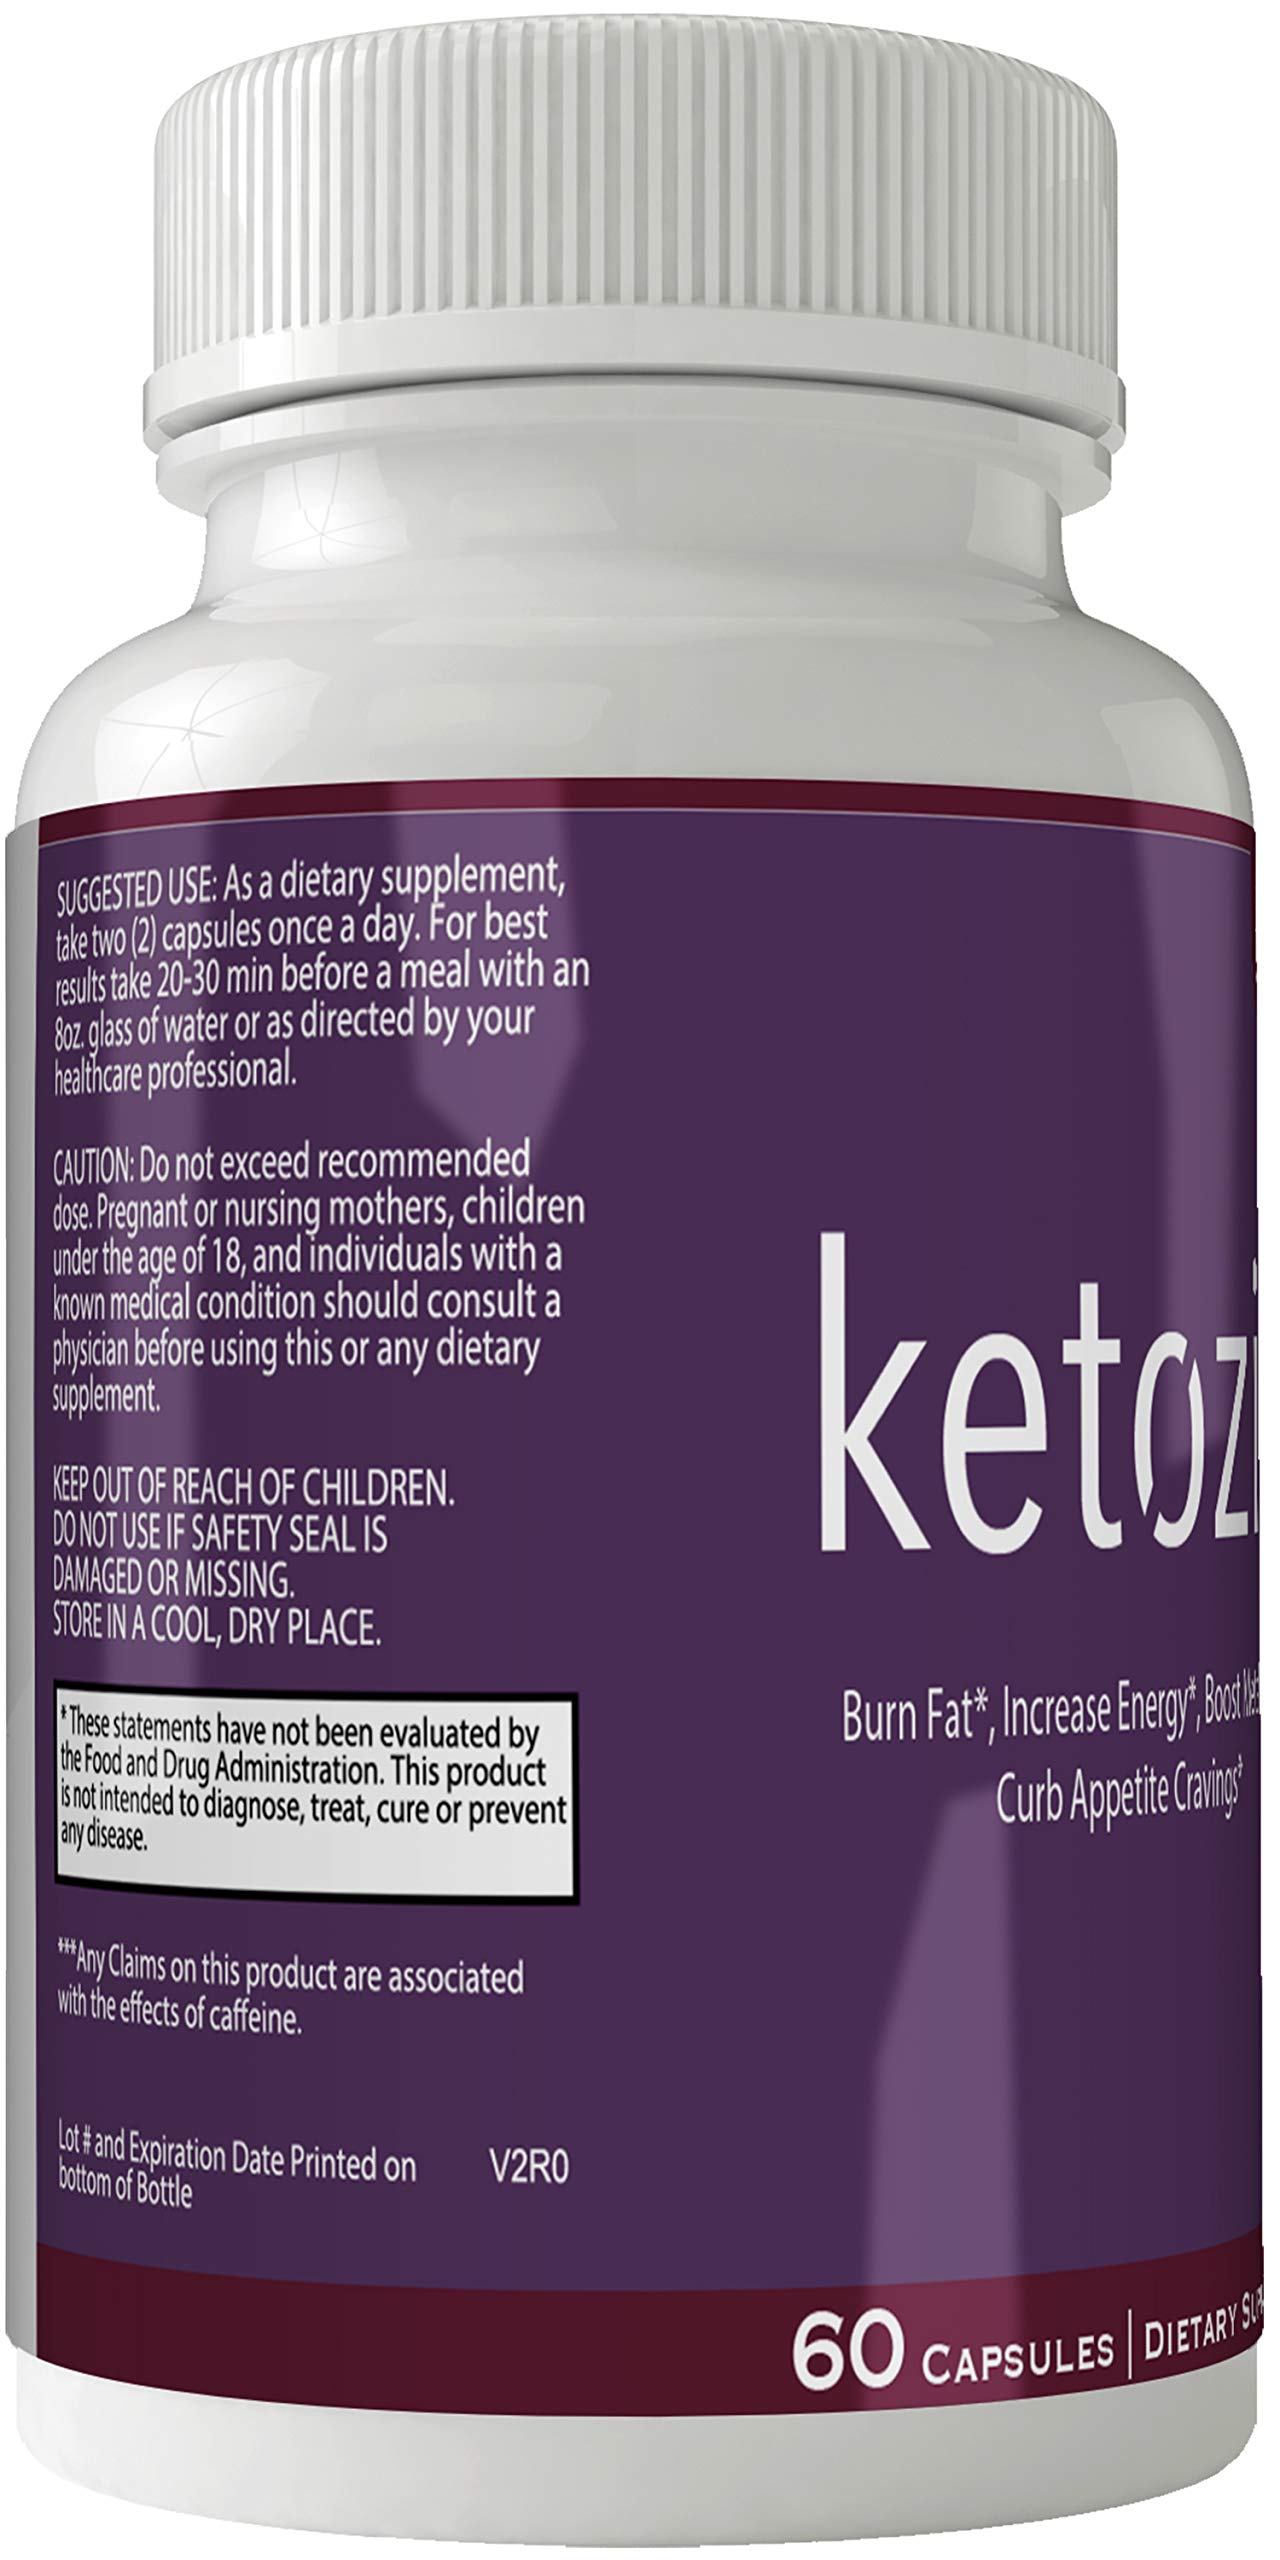 Ketozin Weight Loss Pills Advance Weight Loss Supplement Appetite Suppressant Natural Ketogenic 800 mg Formula with BHB Salts Ketone Diet Capsules to Boost Metabolism, Energy and Focus by nutra4health LLC (Image #2)